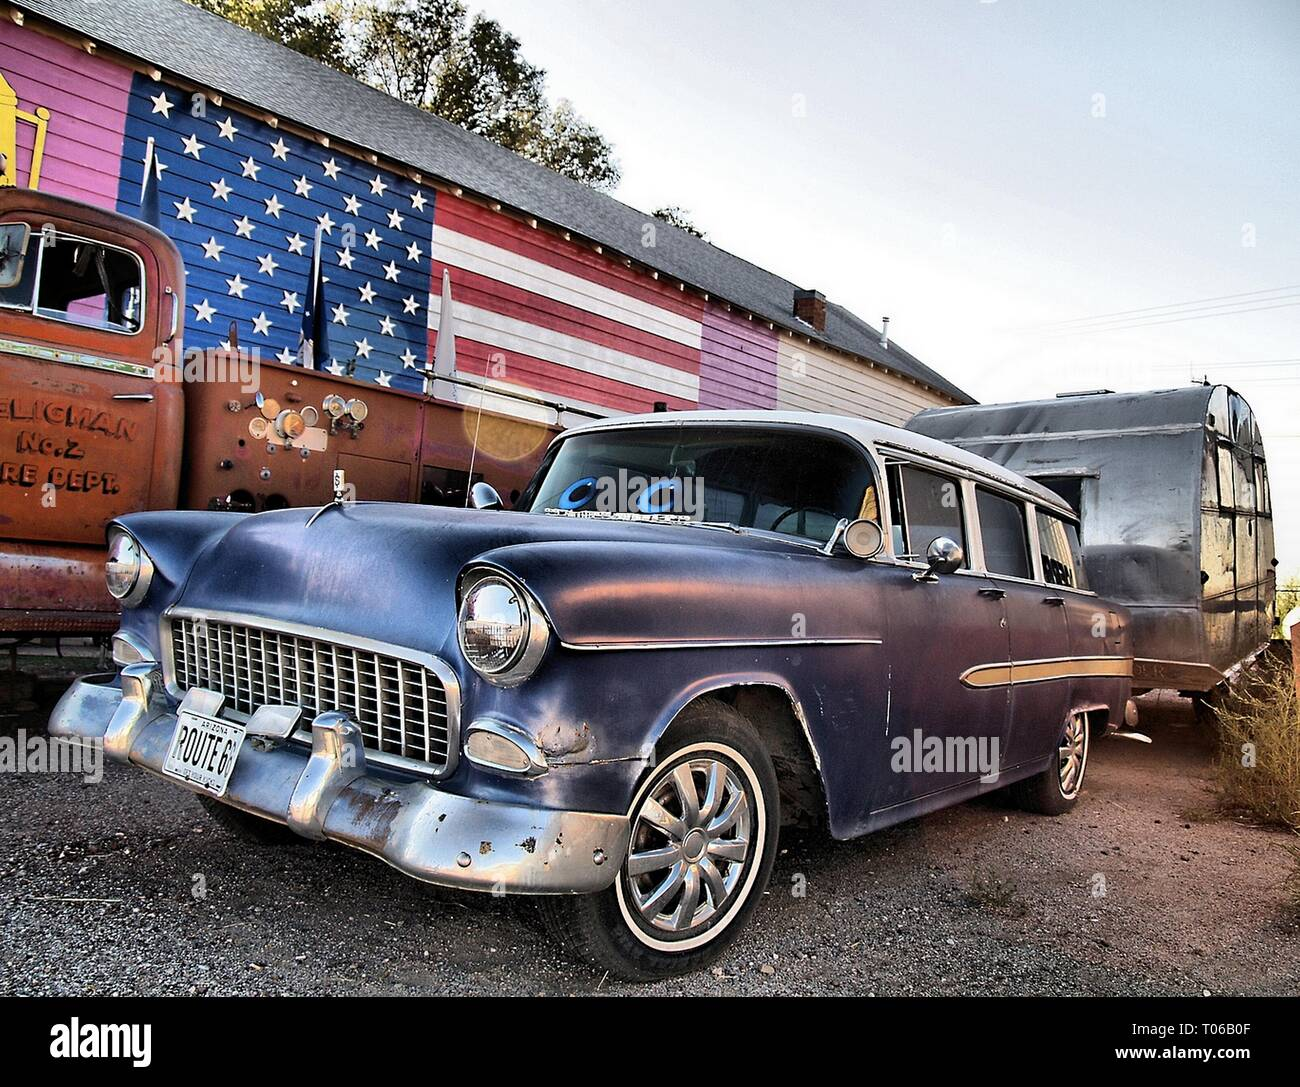 Route 66 automobiles - Stock Image